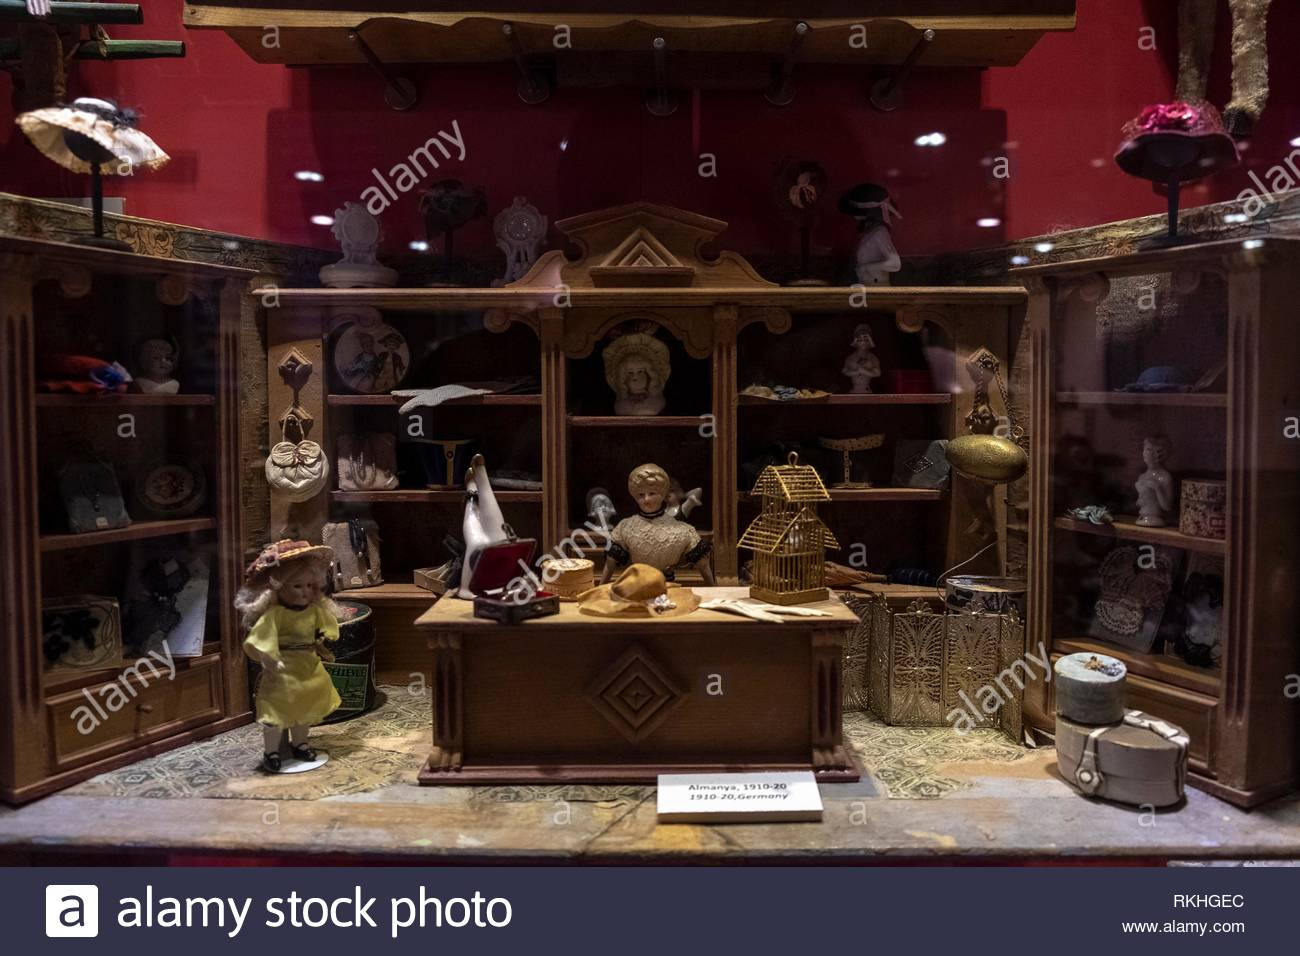 Vintage Dollhouse Germany 1910 the hat shop Stock Photo  235799380 ... c58f36472a4